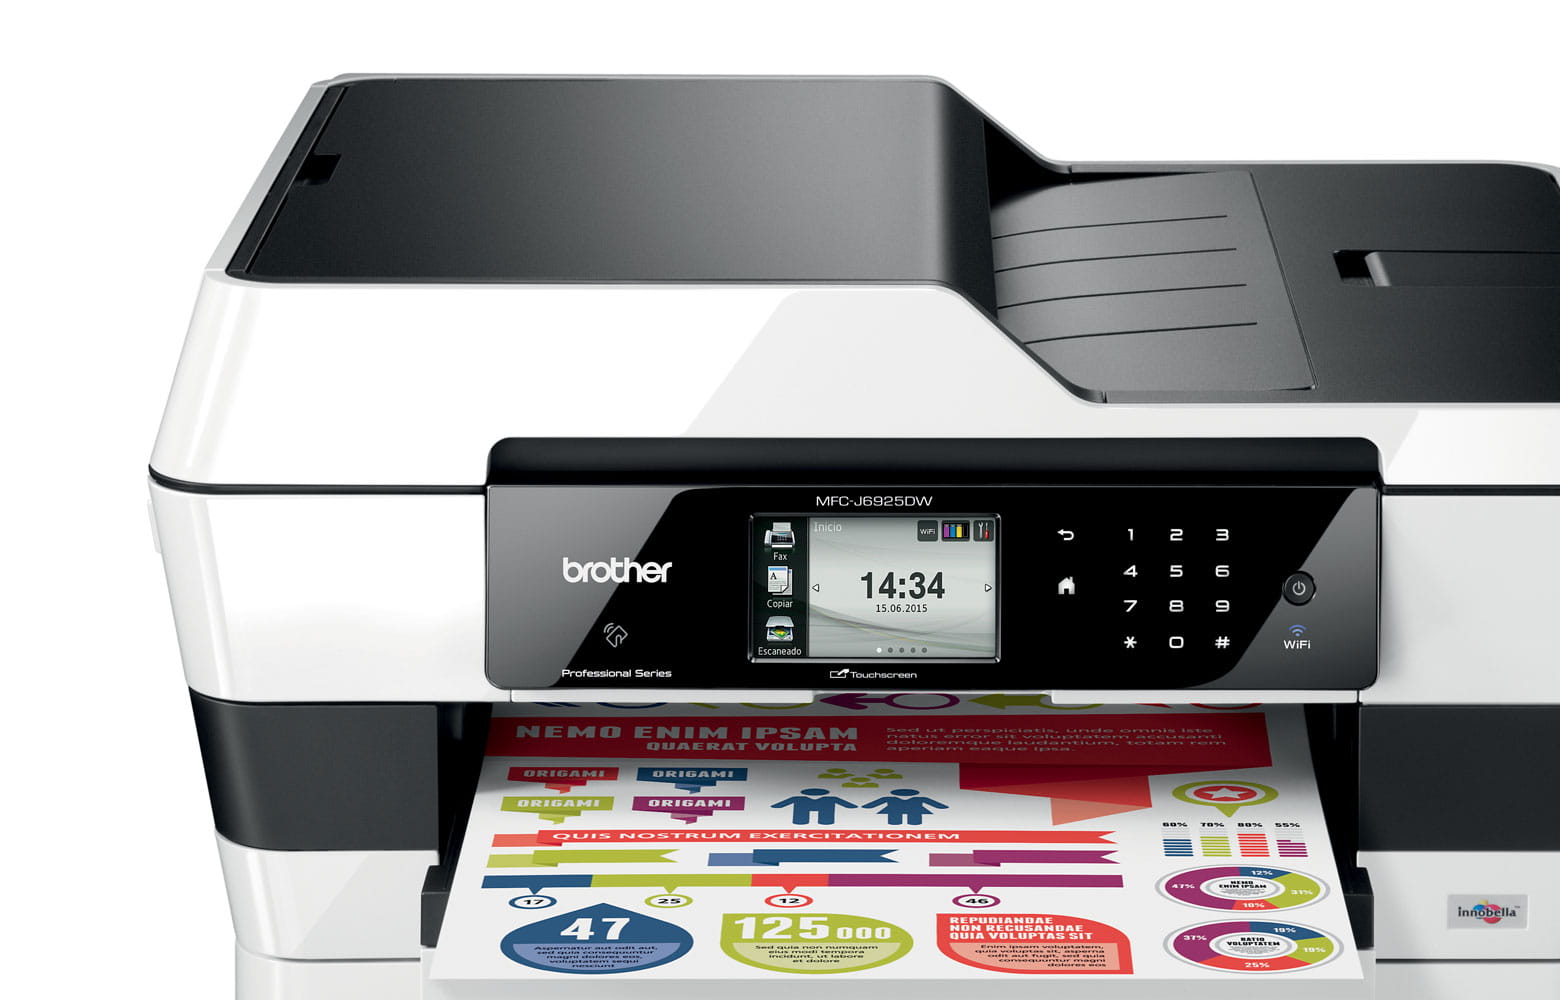 brother all printers MFC-J6925DW